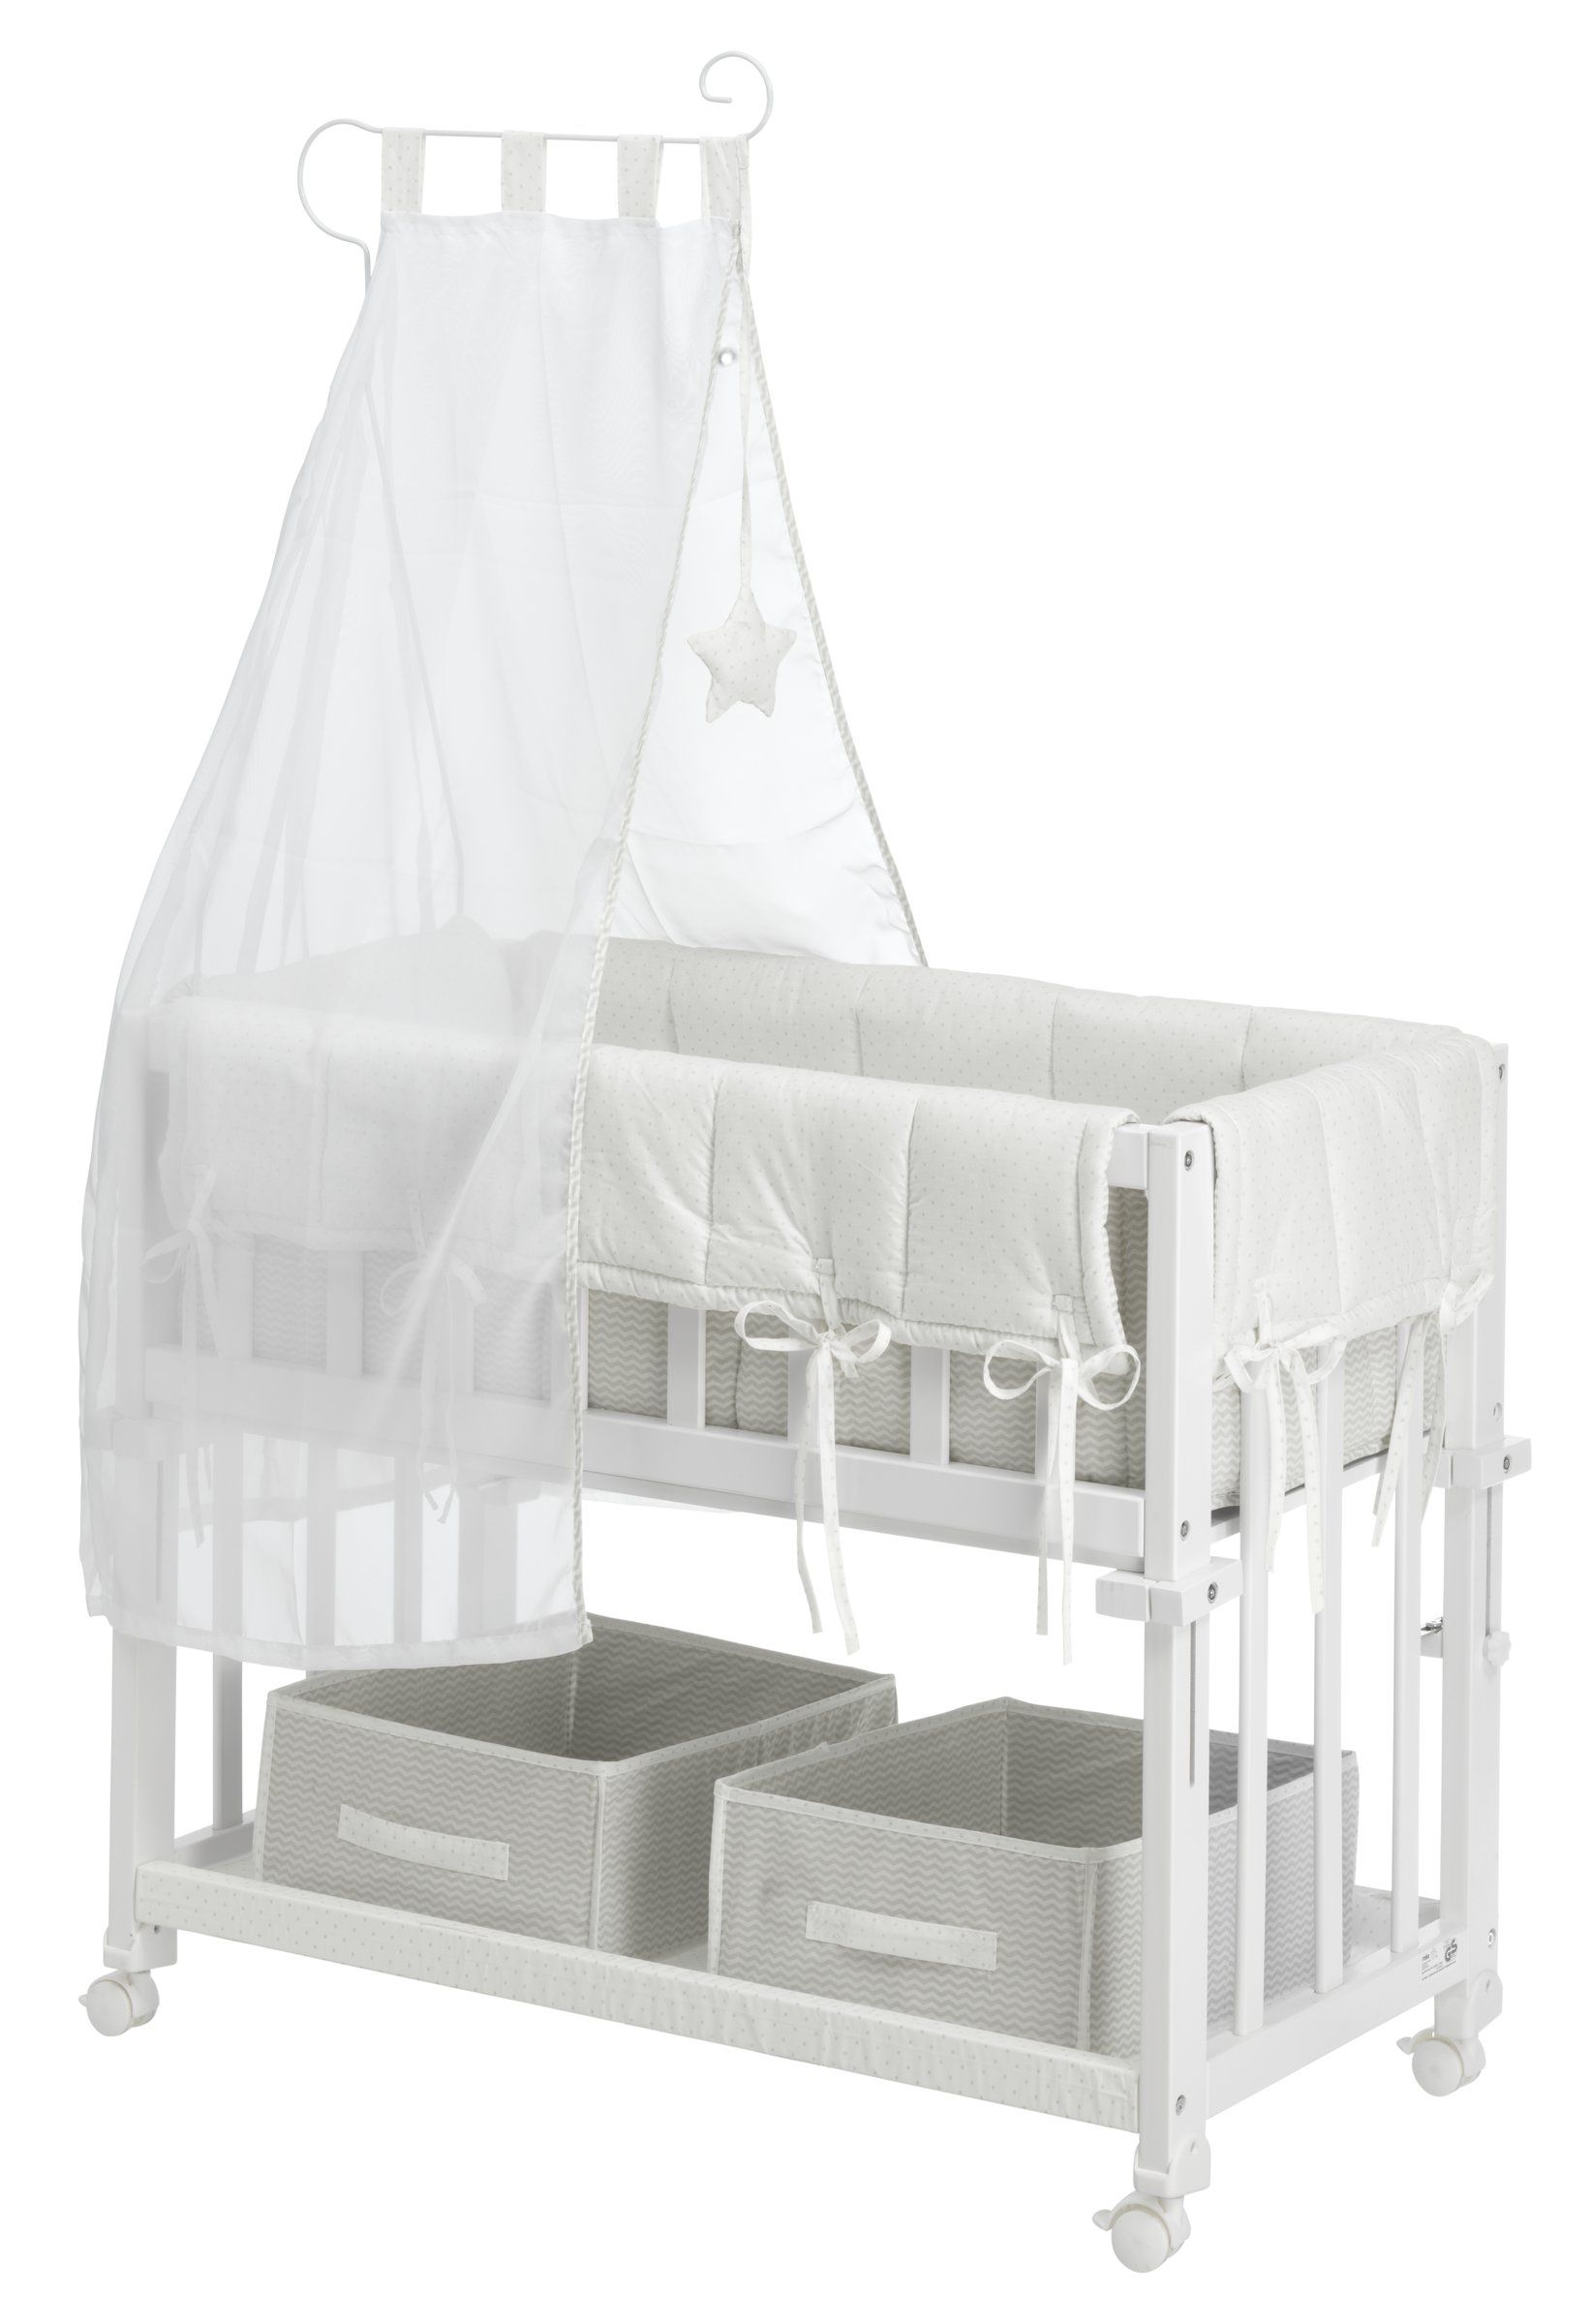 babybett emilie 4 in 1 babybett weiss lackiert verwendbar. Black Bedroom Furniture Sets. Home Design Ideas